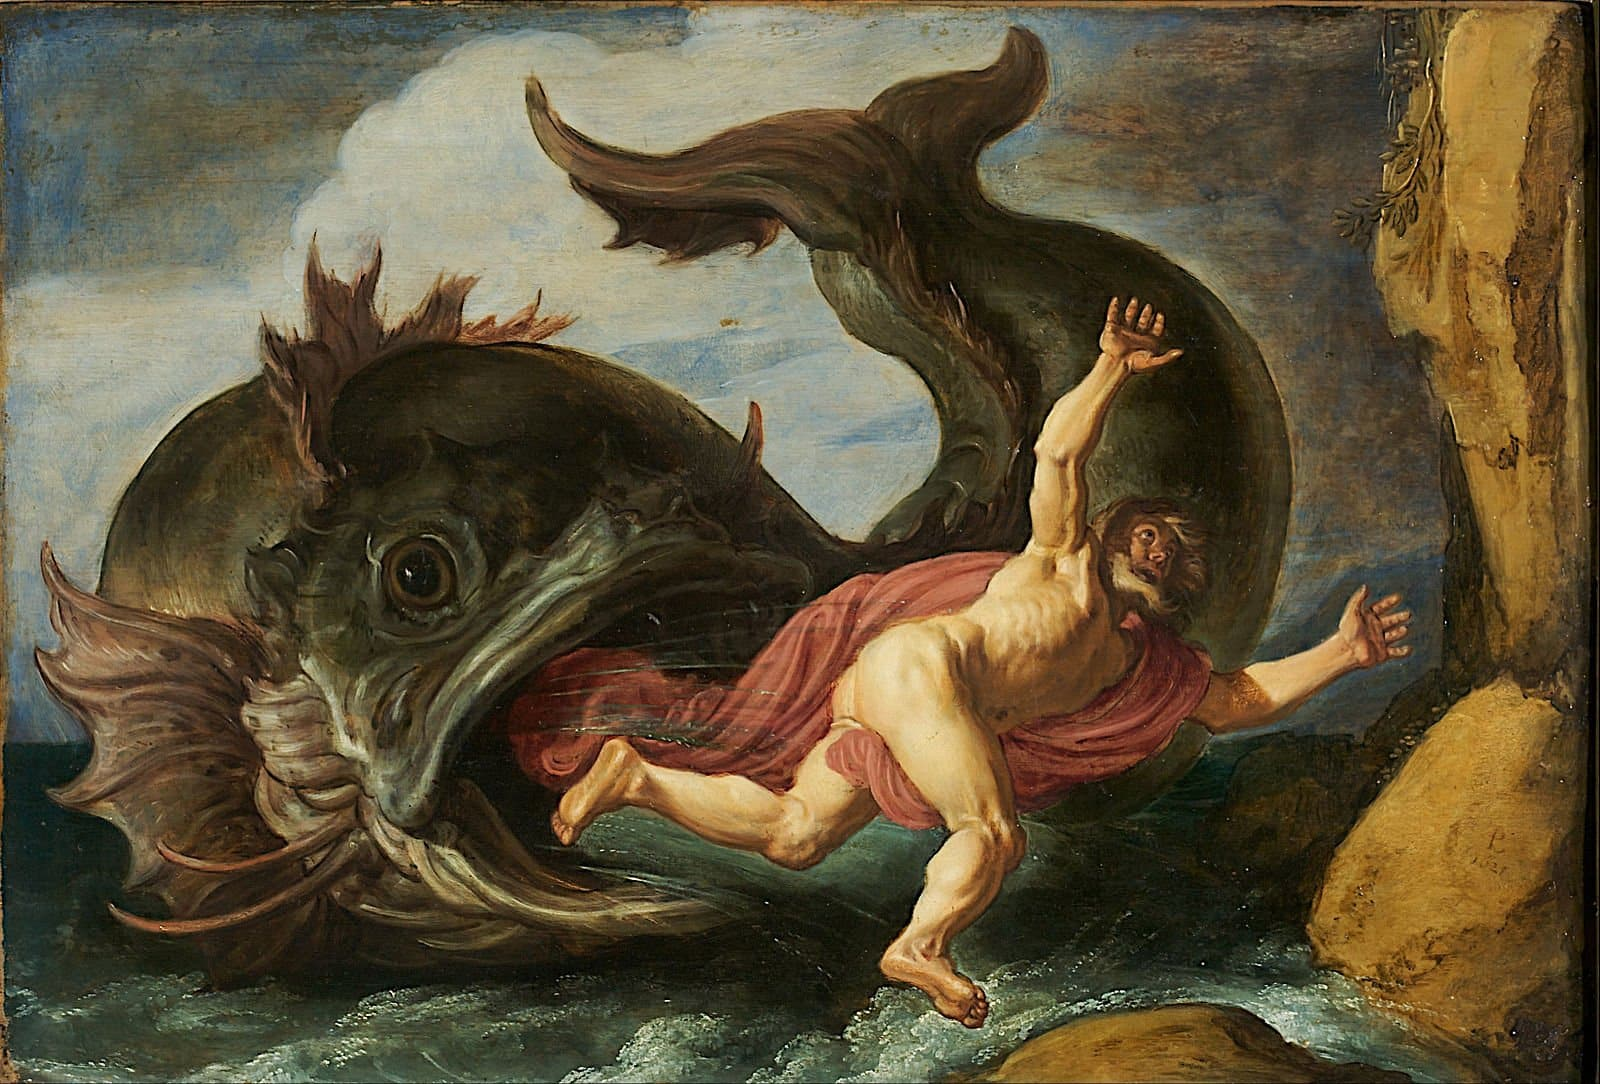 the meaning of the story of Jonah